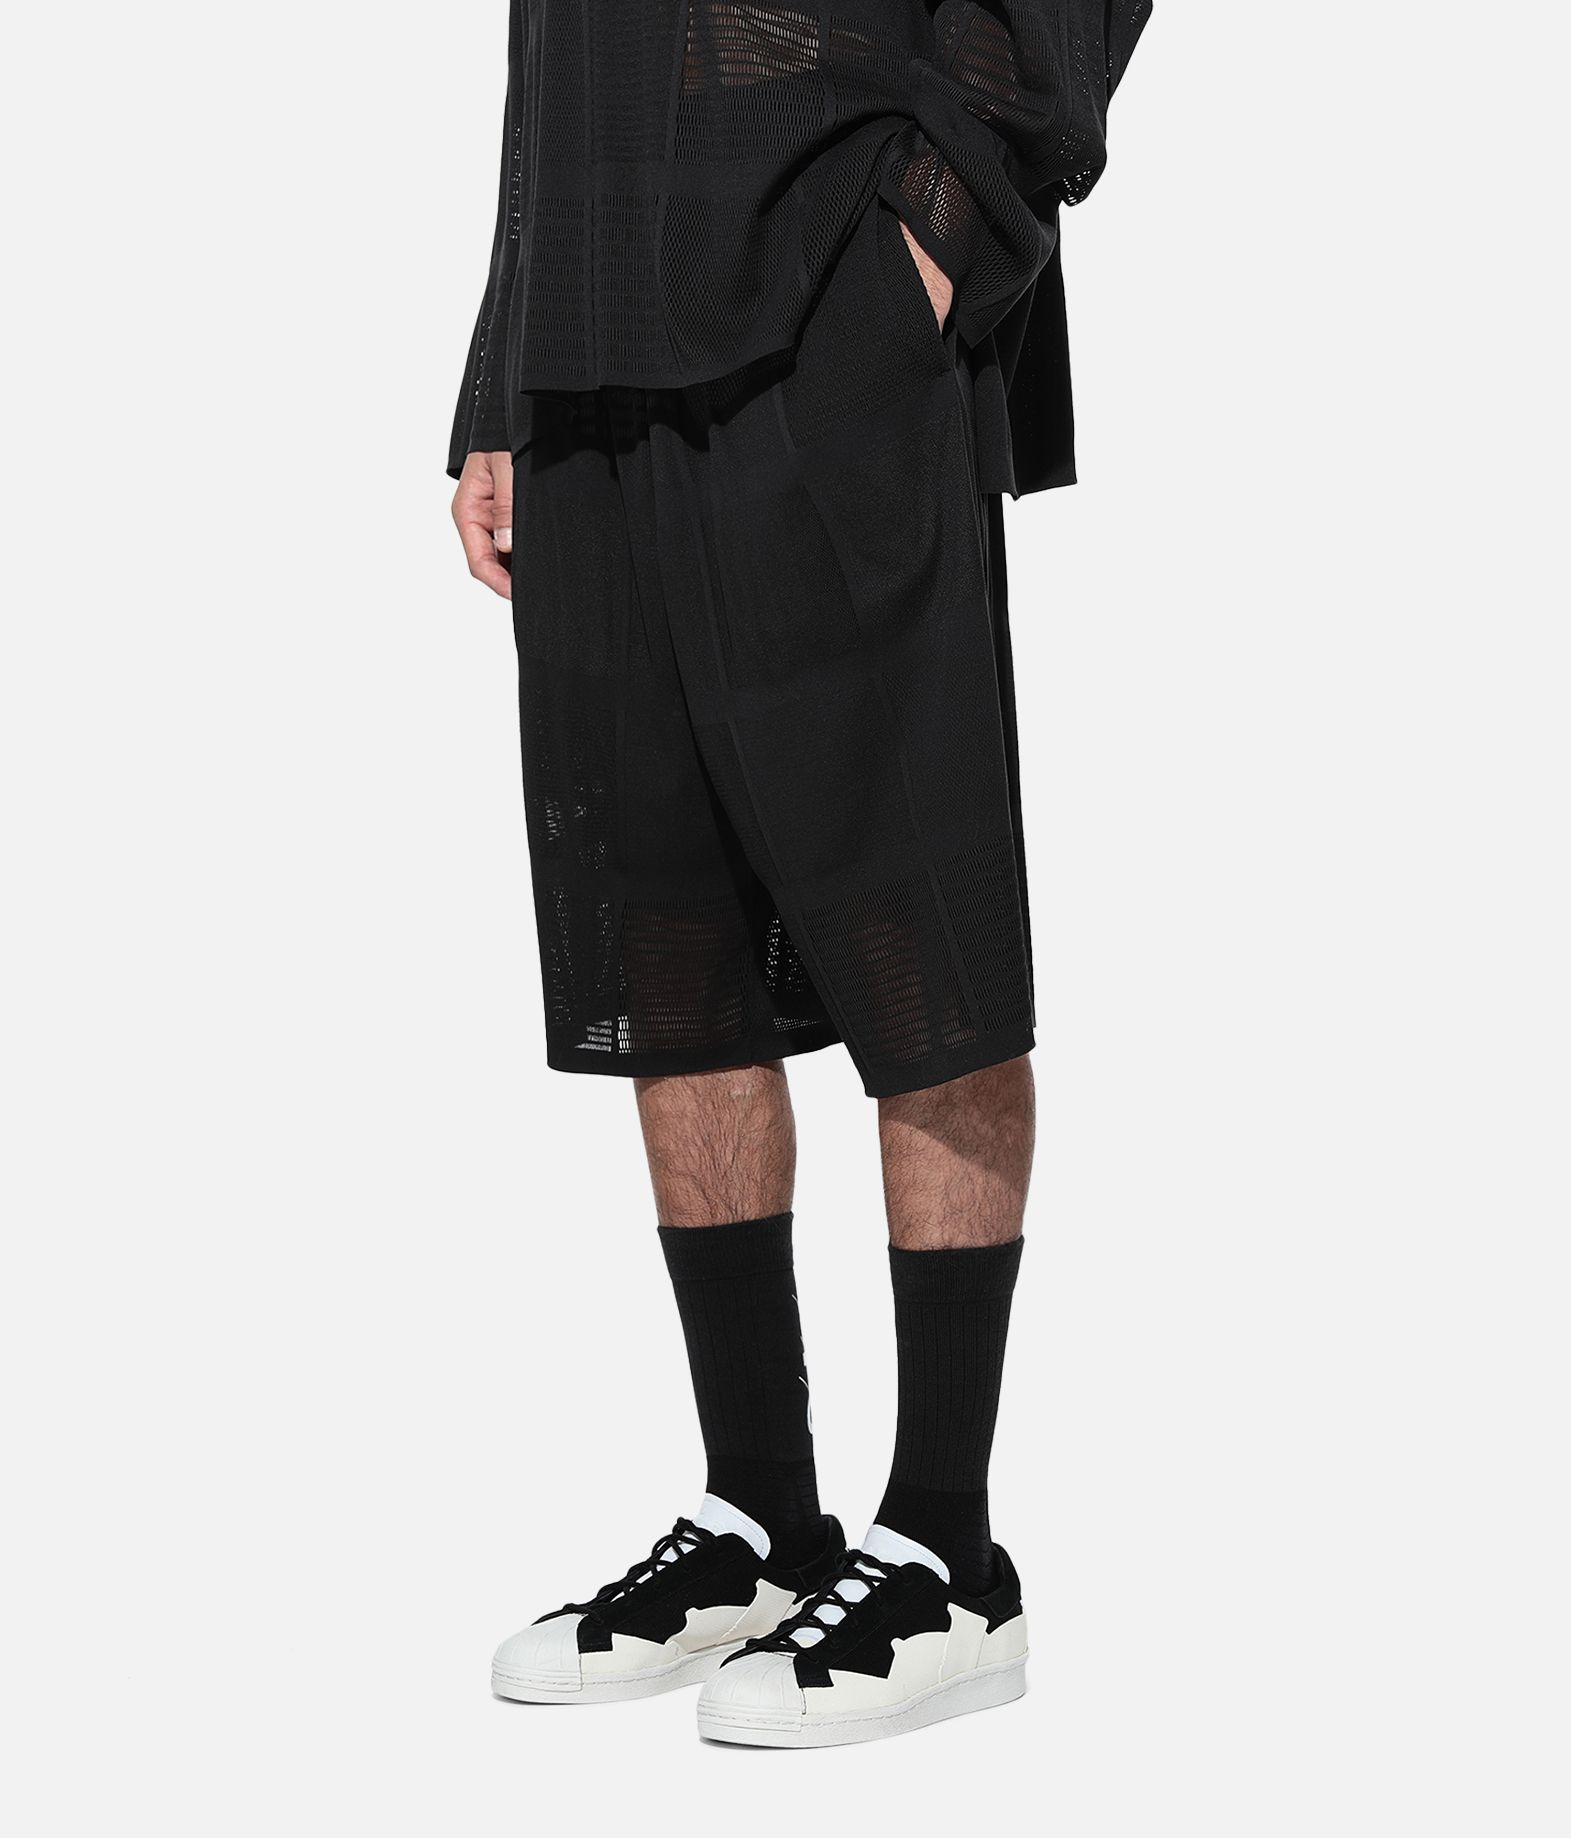 Y-3 Y-3 Patchwork Shorts Shorts Man e